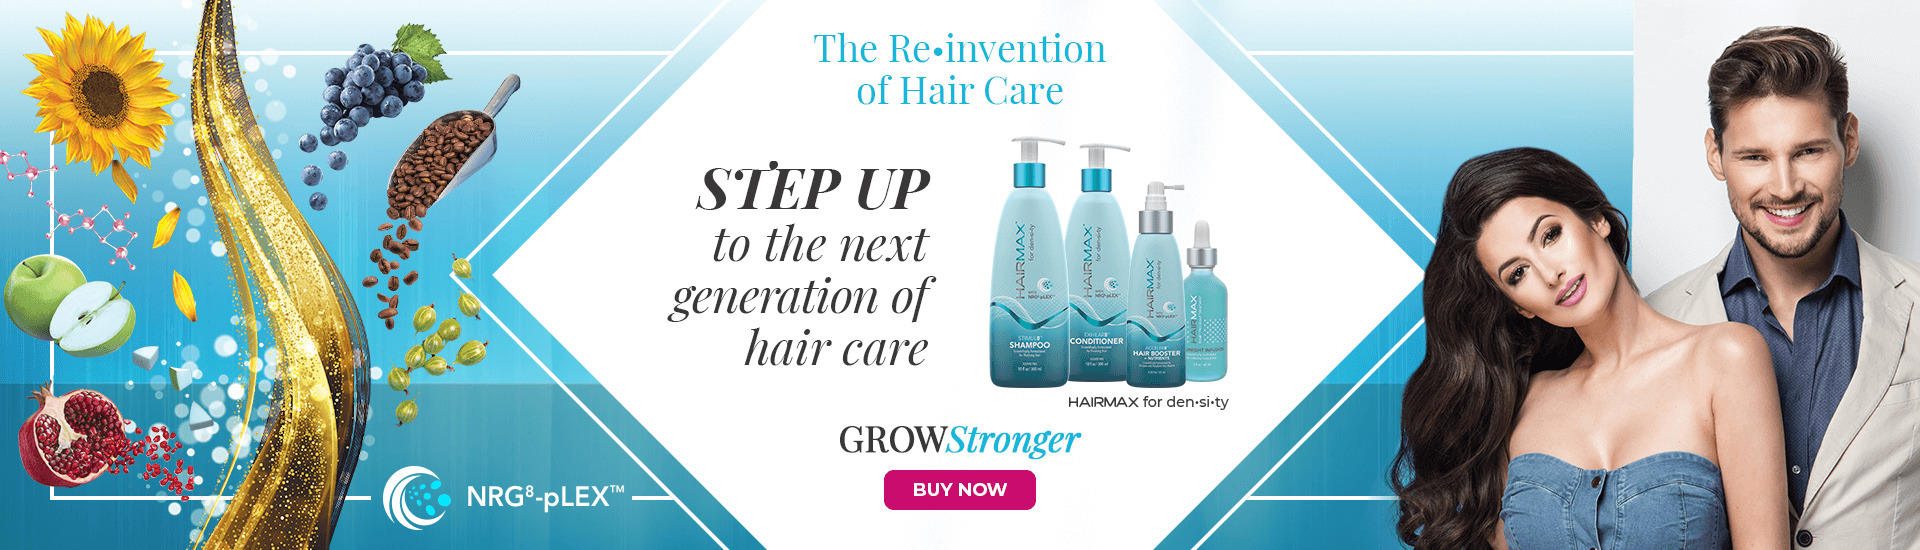 The Re-Invention of Hair Care